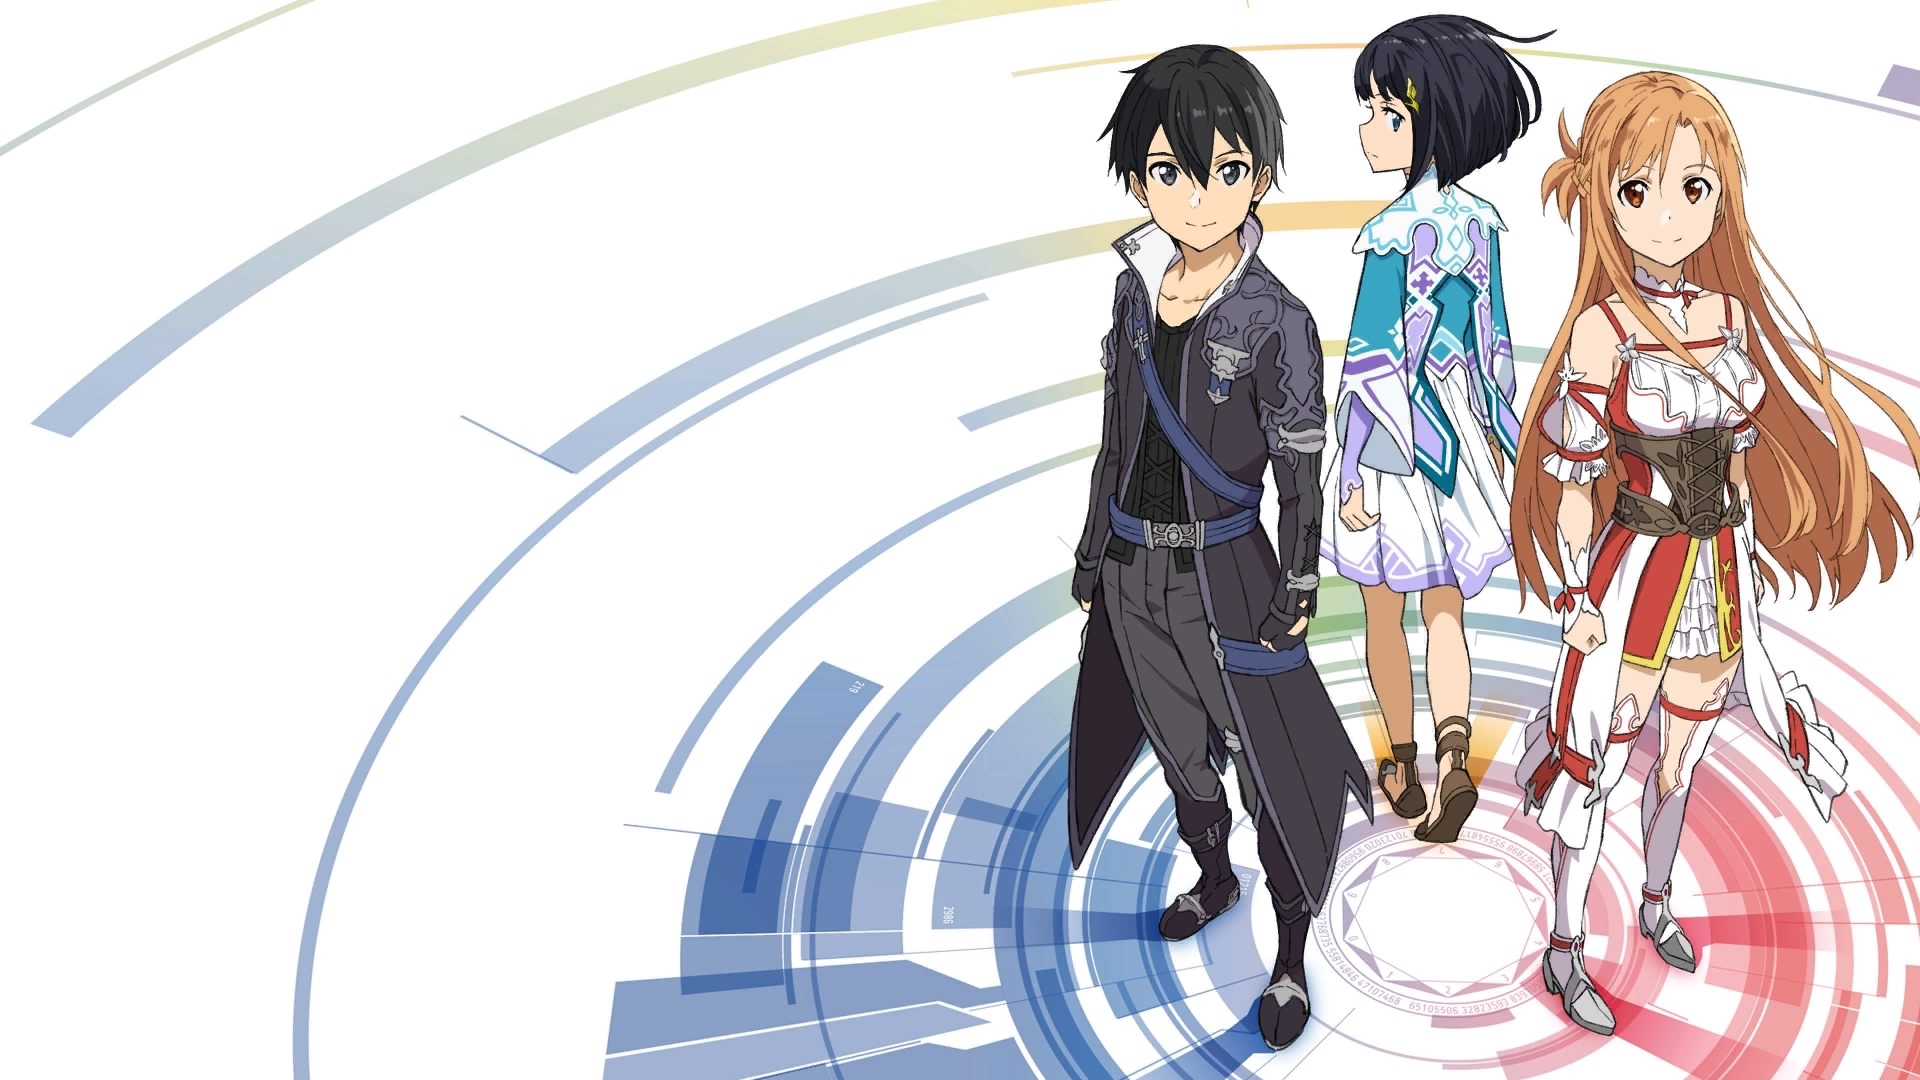 Sword Art Online: Hollow Realization (PS4) Review - GameAxis